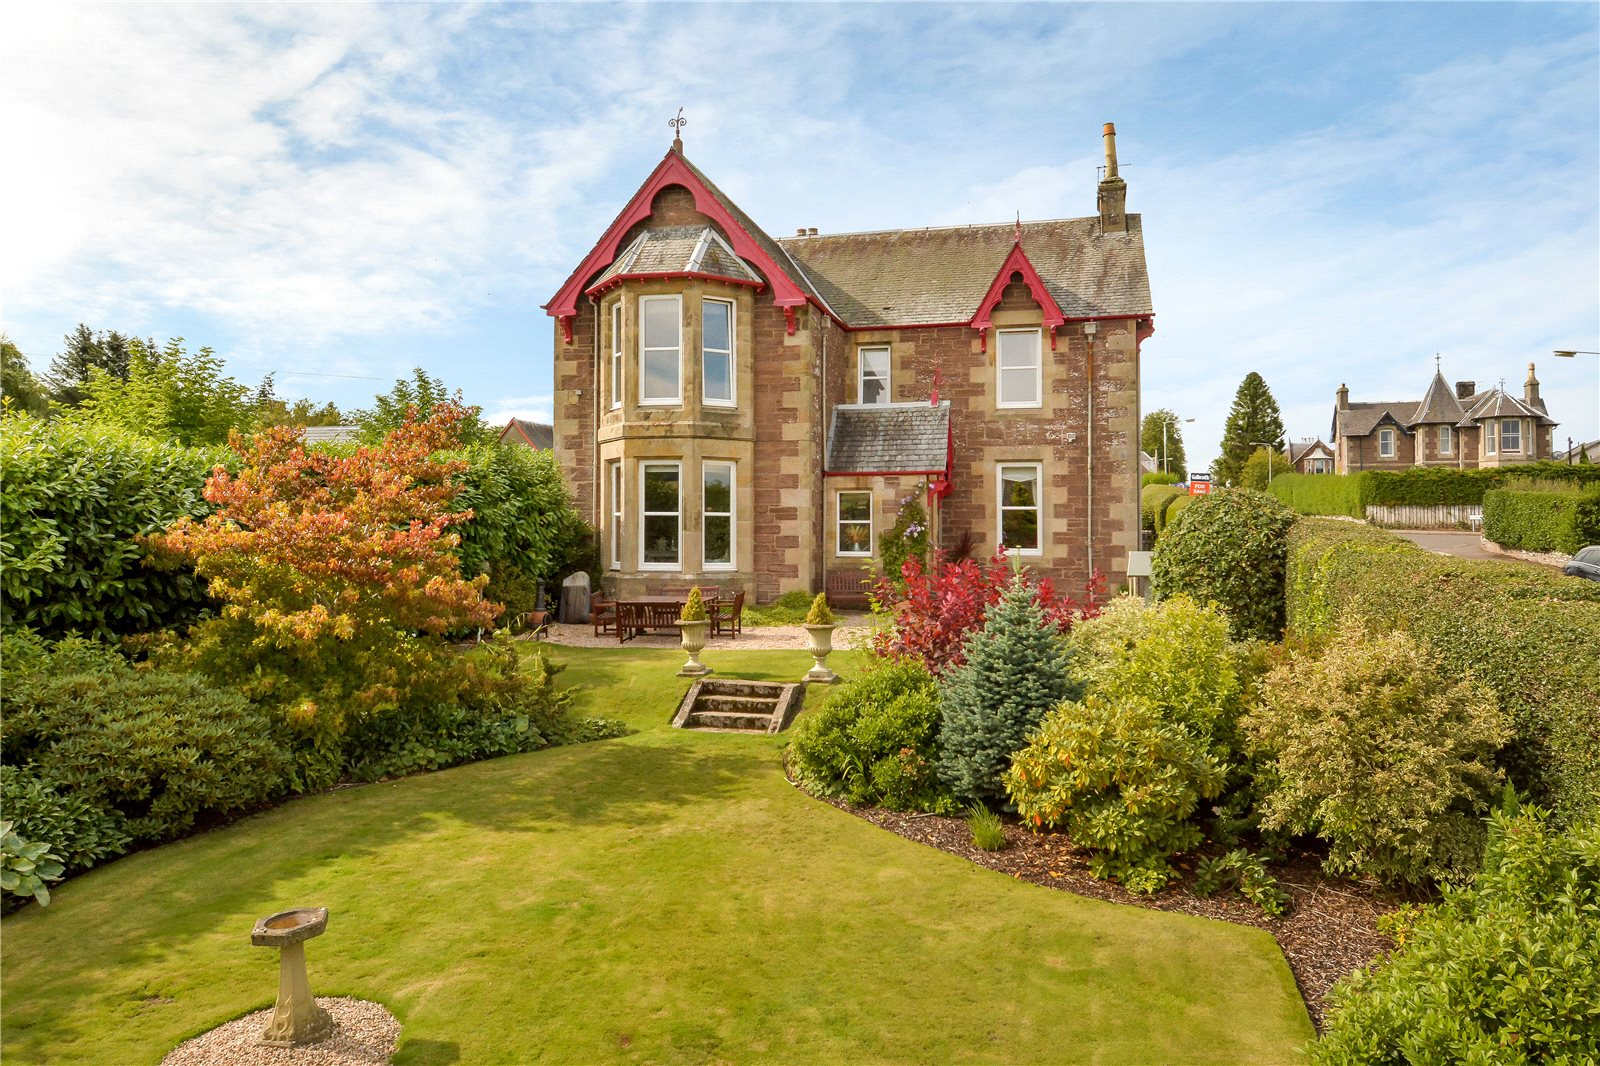 4 Bedrooms Detached House for sale in Ardenvohr, Montrose Road, Auchterarder, Perthshire, Perthshire, PH3